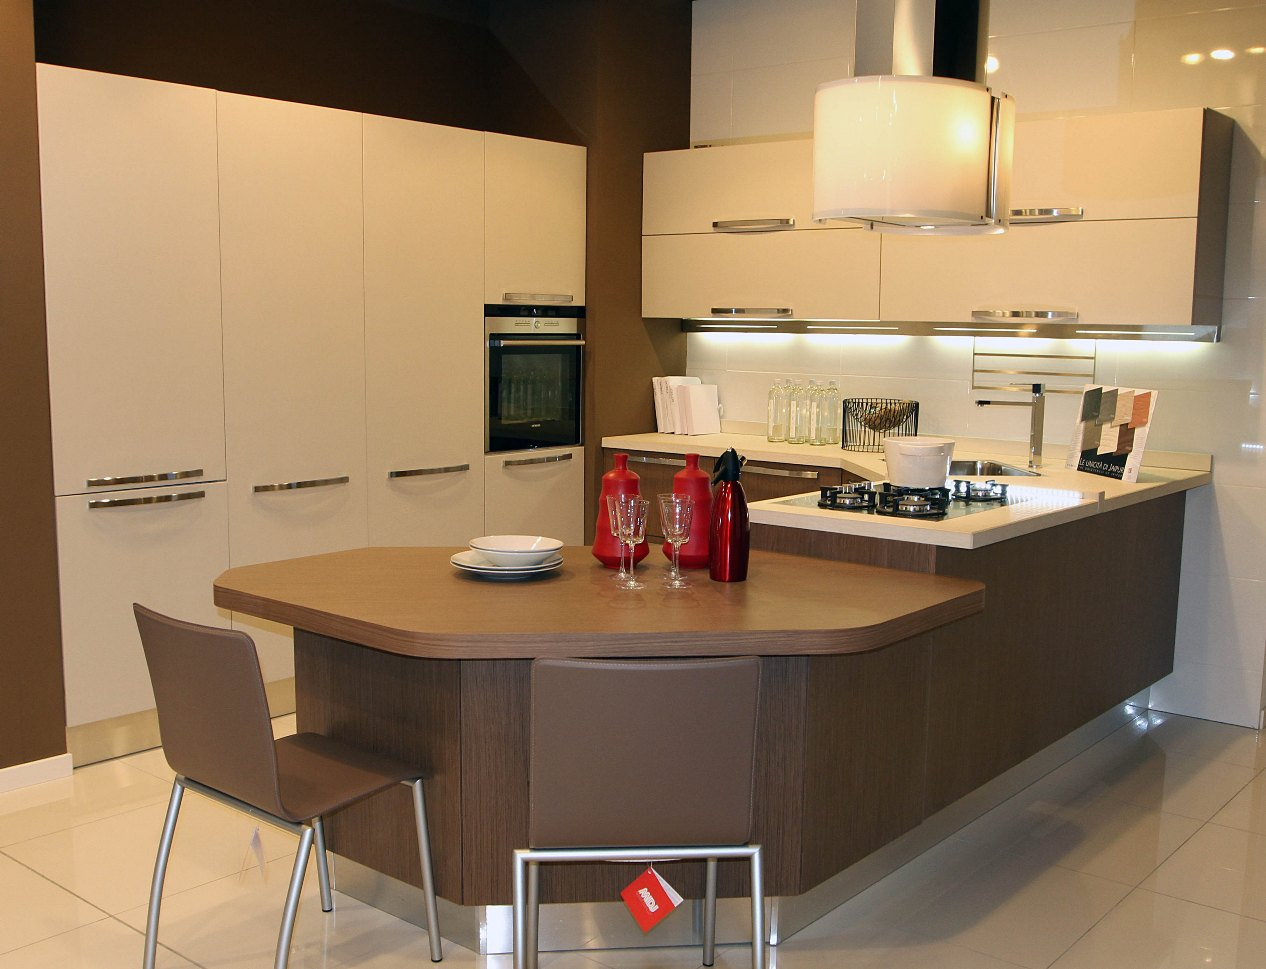 Cucine country outlet awesome fabulous veneta cucine outlet cucine country outlet veneto - Scic cucine outlet ...